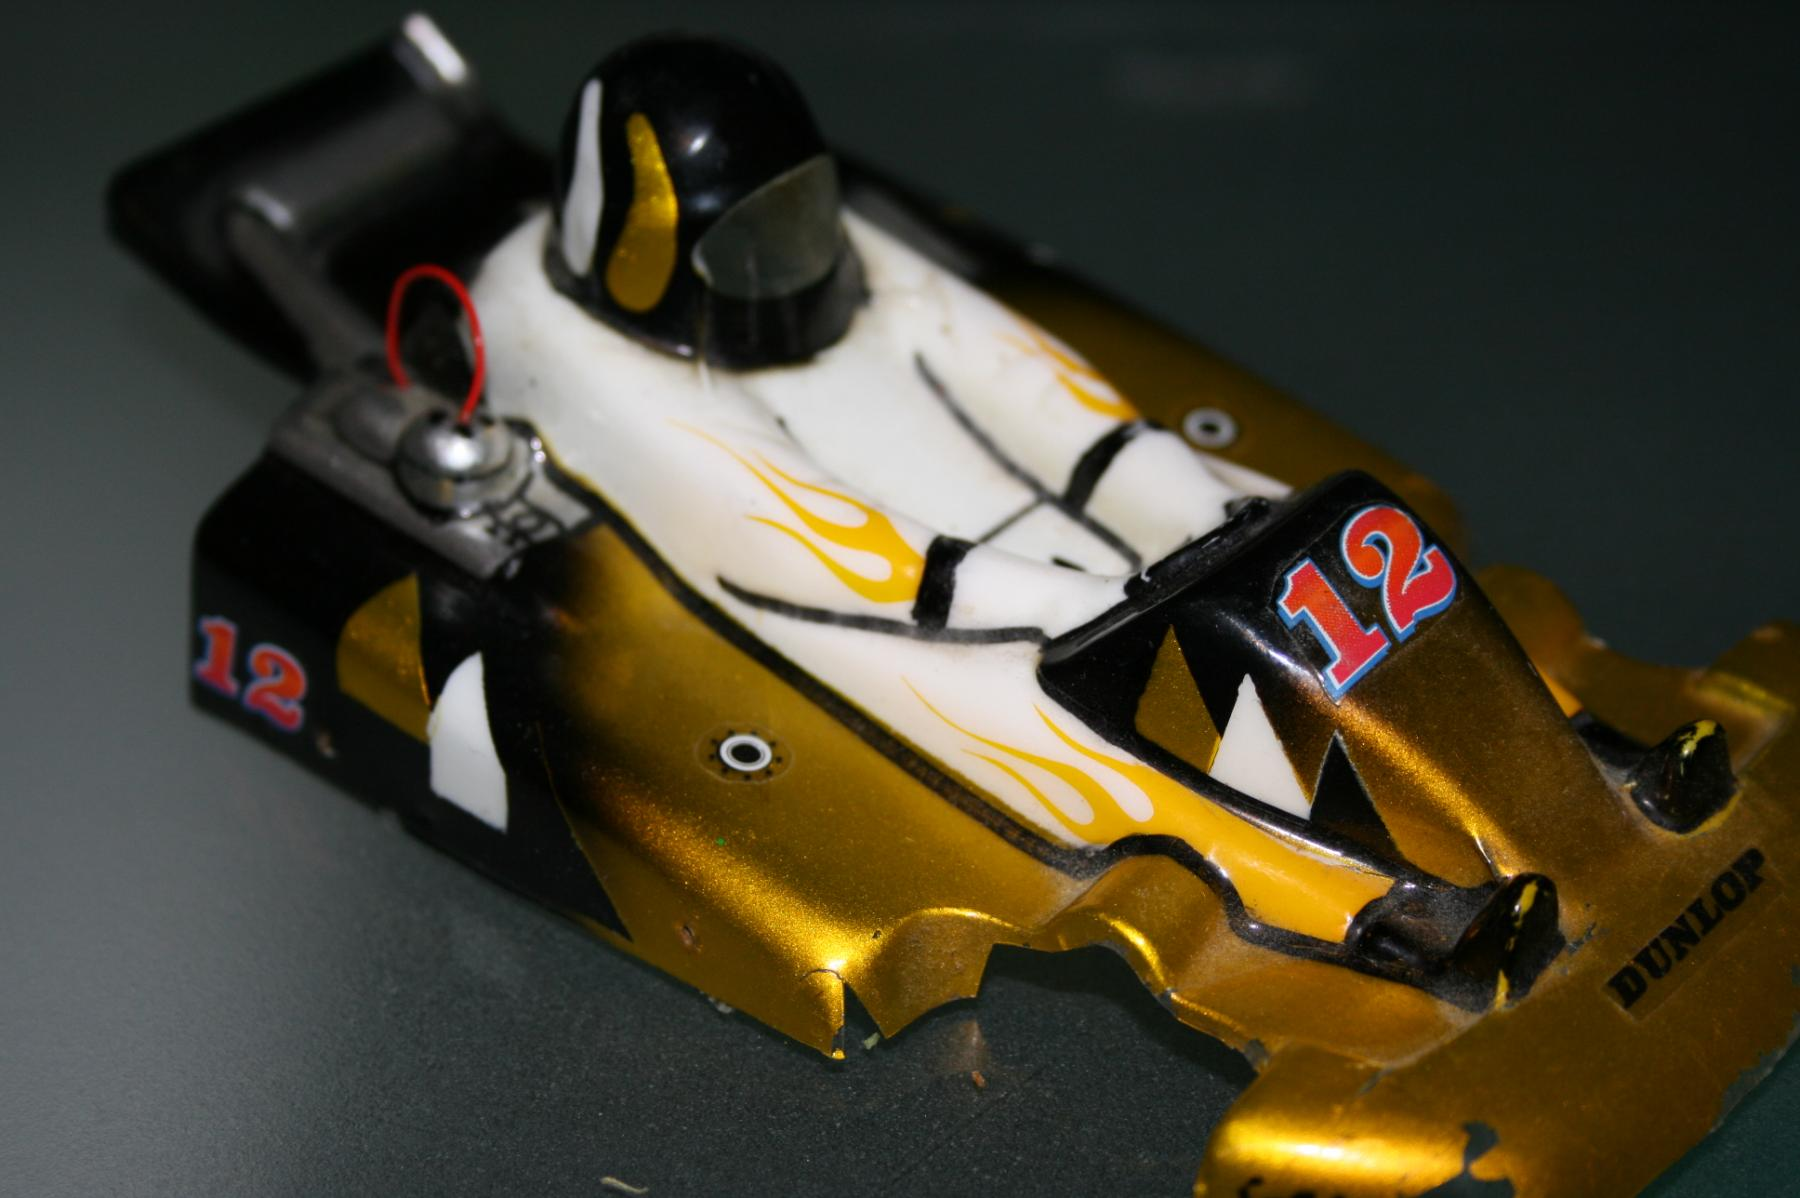 slot car pic 004.JPG